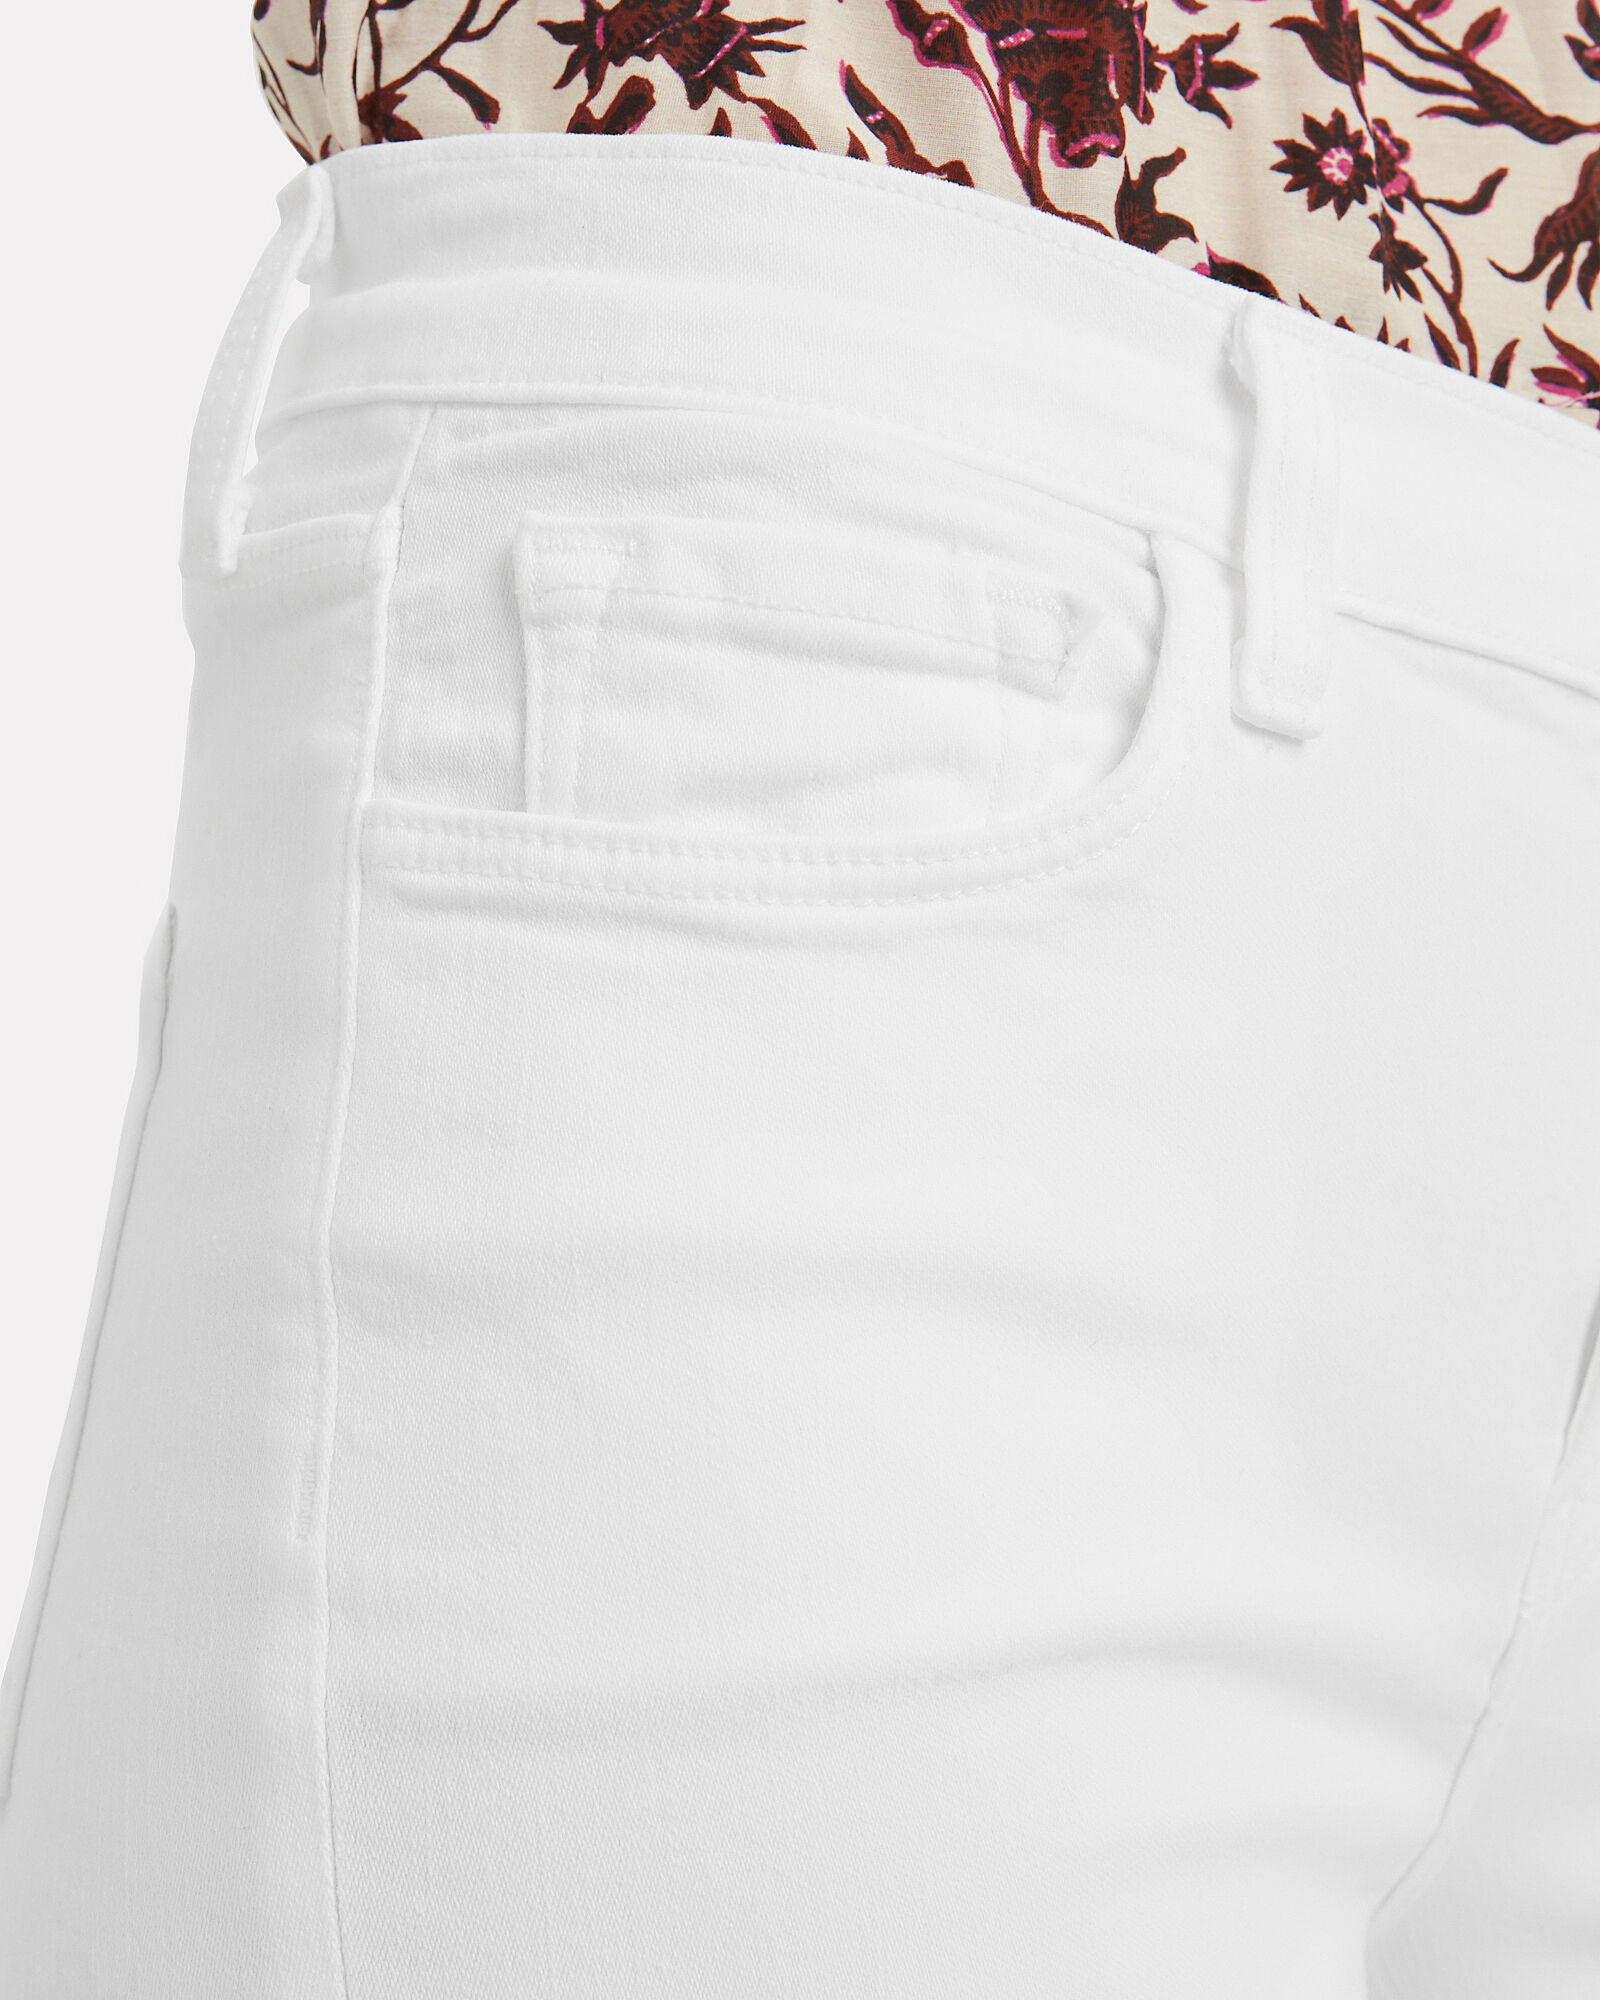 Valentina High-Rise Jeans, WHITE, hi-res